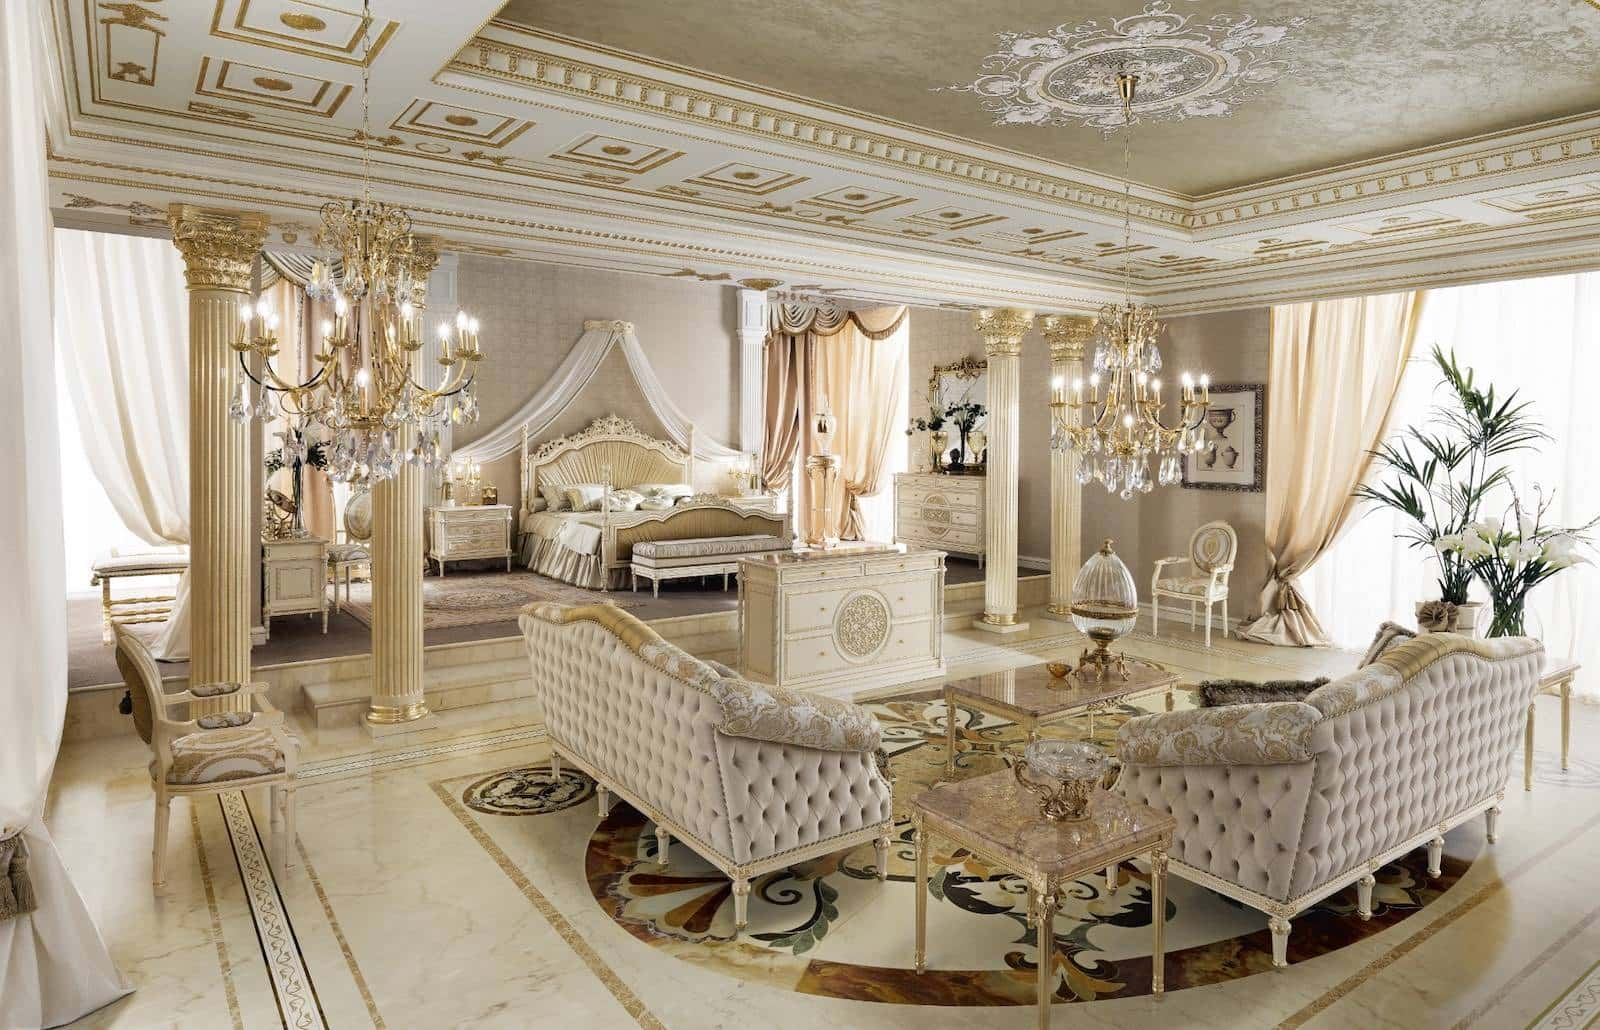 Luxury Classic Furniture Made In Italy Handmade Interiors Modenese Luxury Interiors Italian Furniture Manufacturer Exclusive Interior Design Service